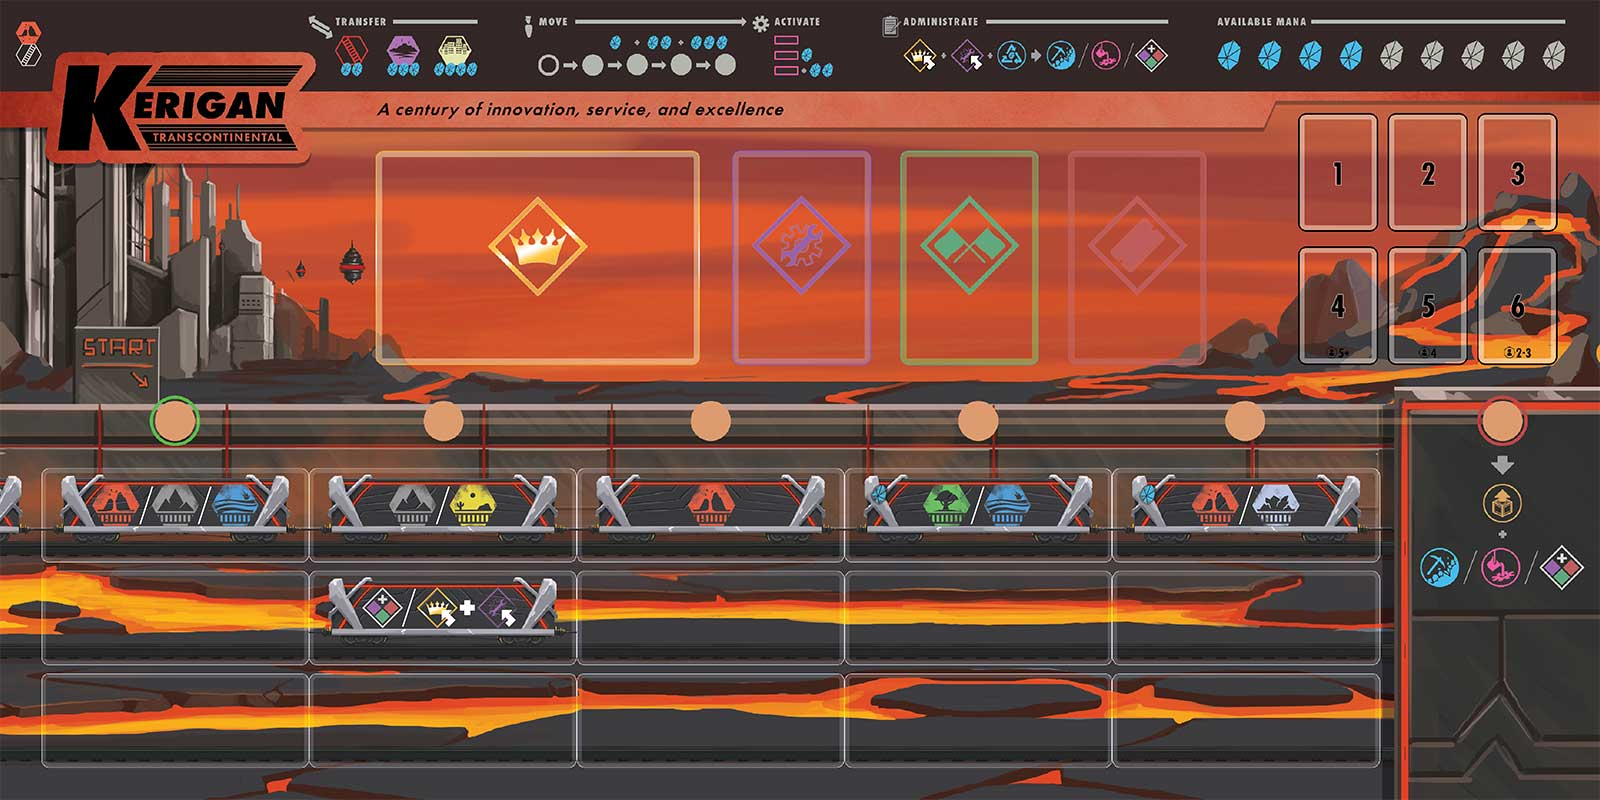 empyreal-spells-and-steam_player-board5.jpg